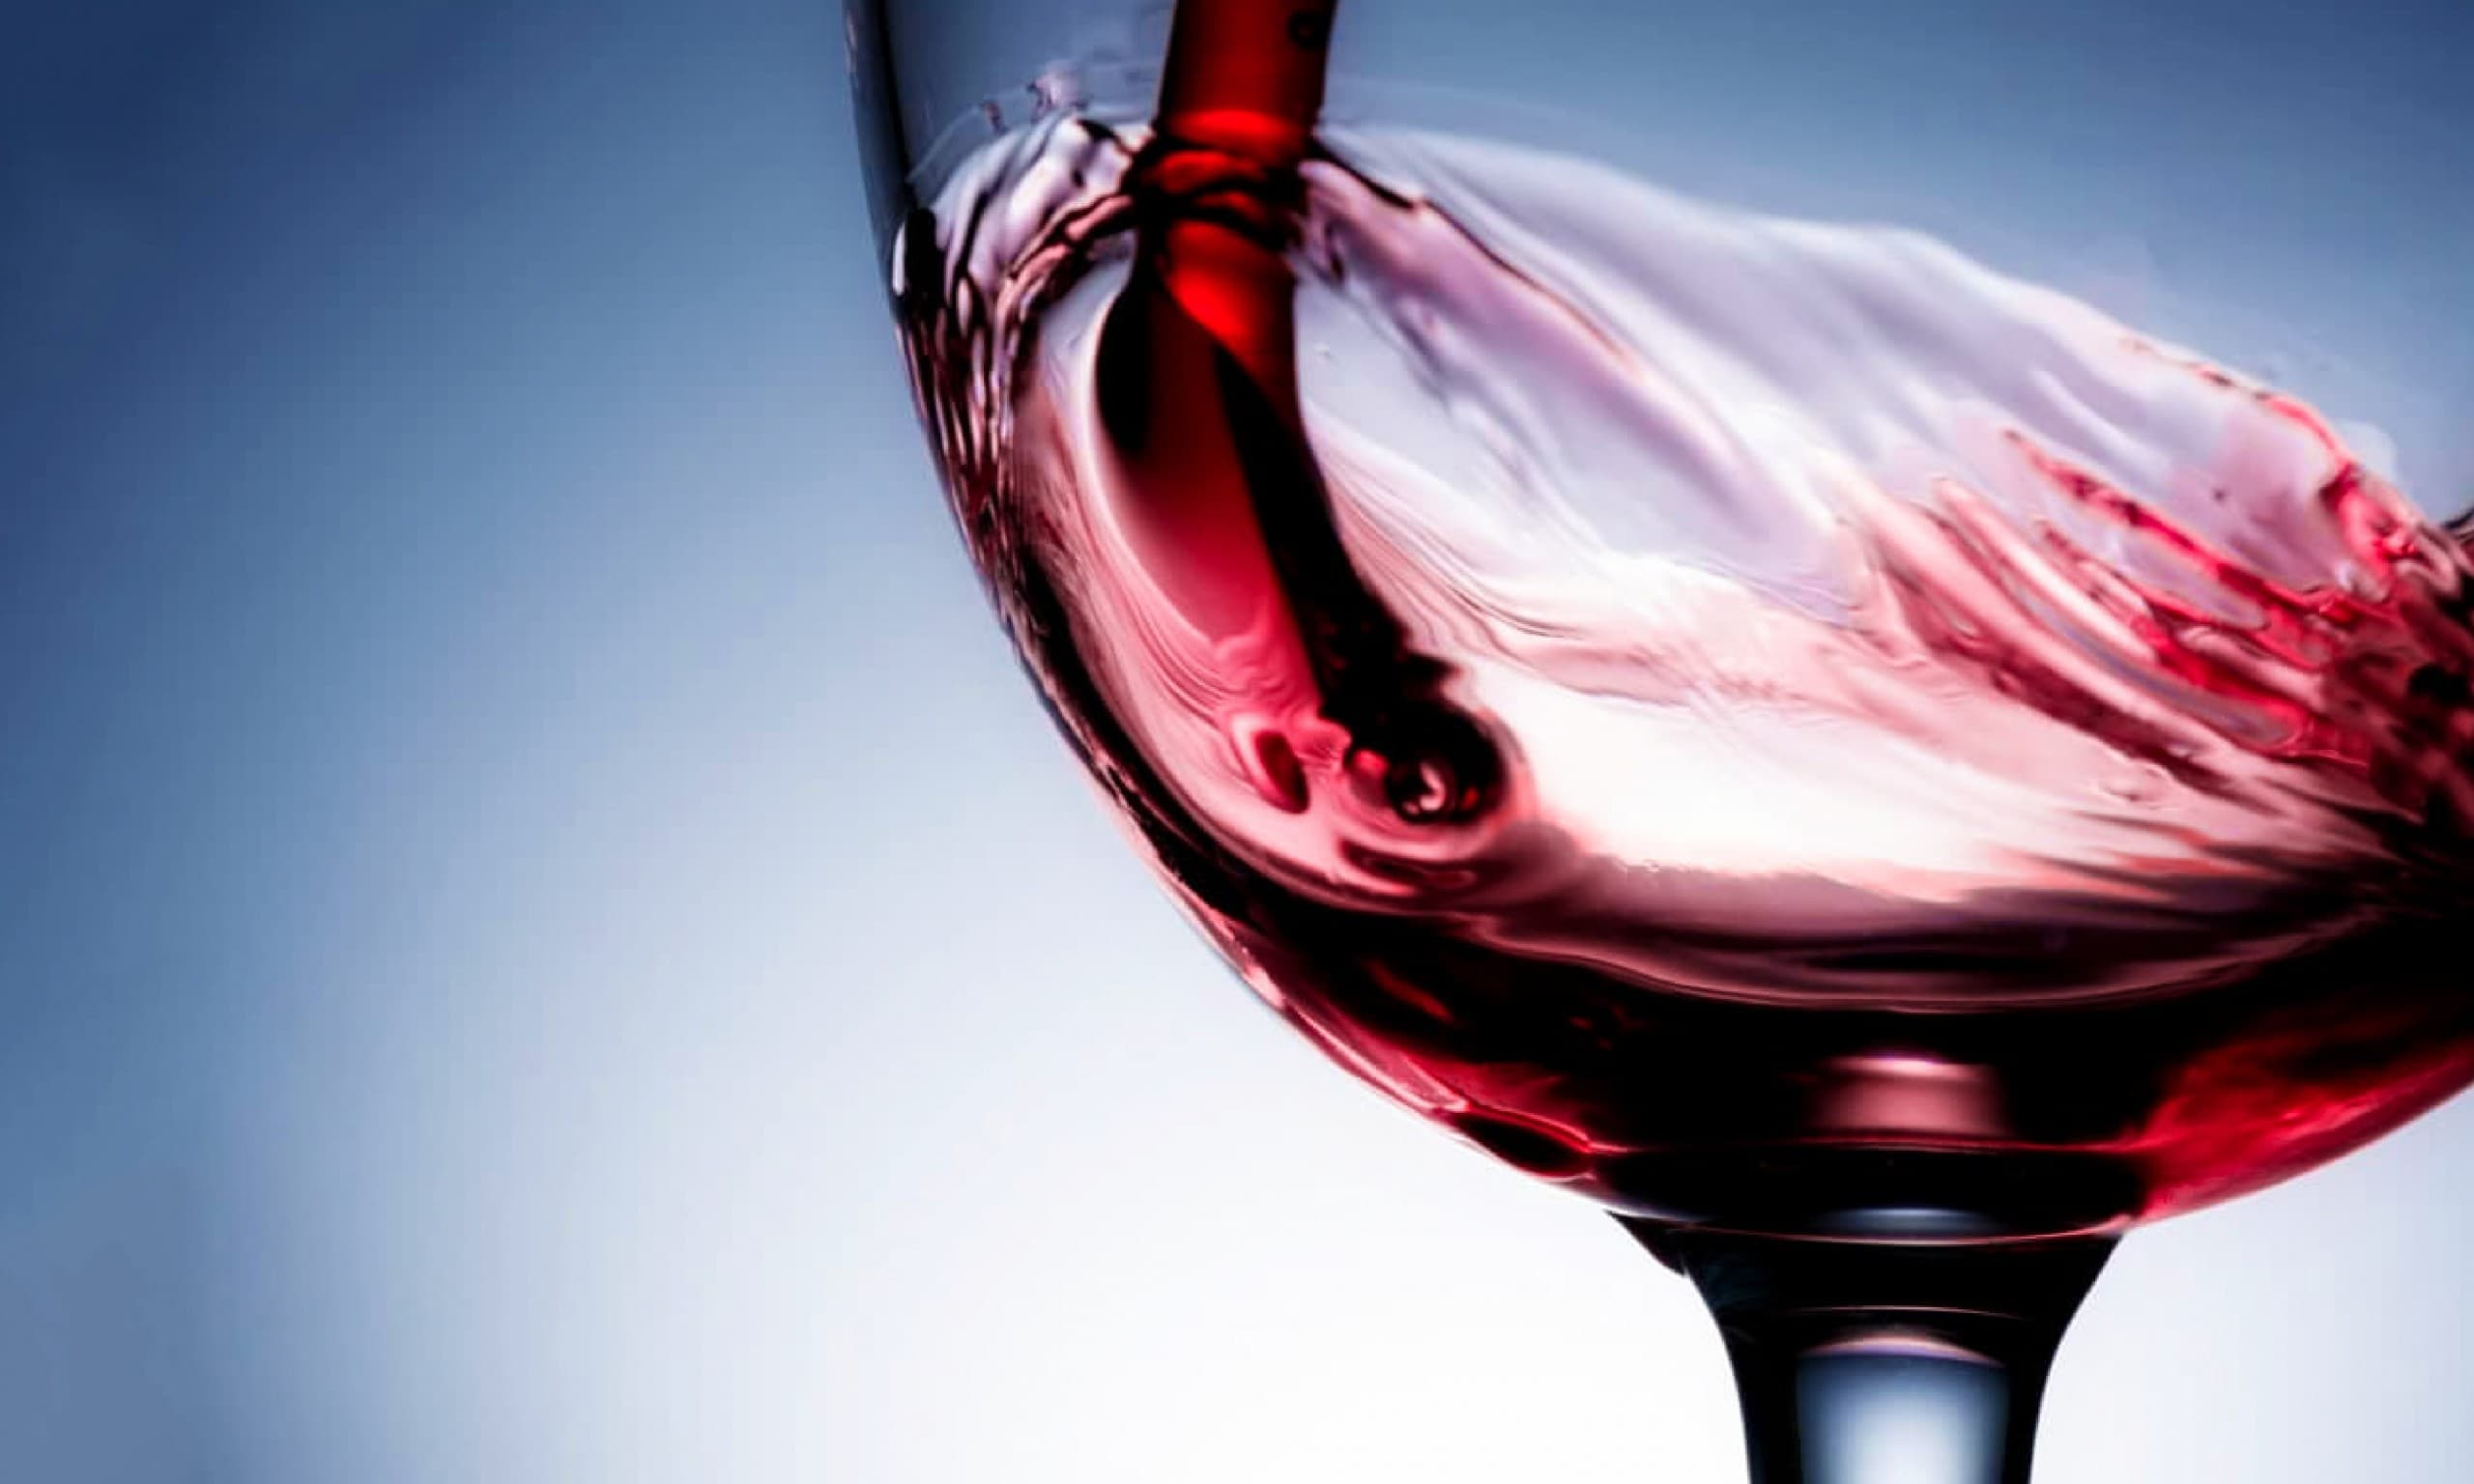 A glass with red wine.